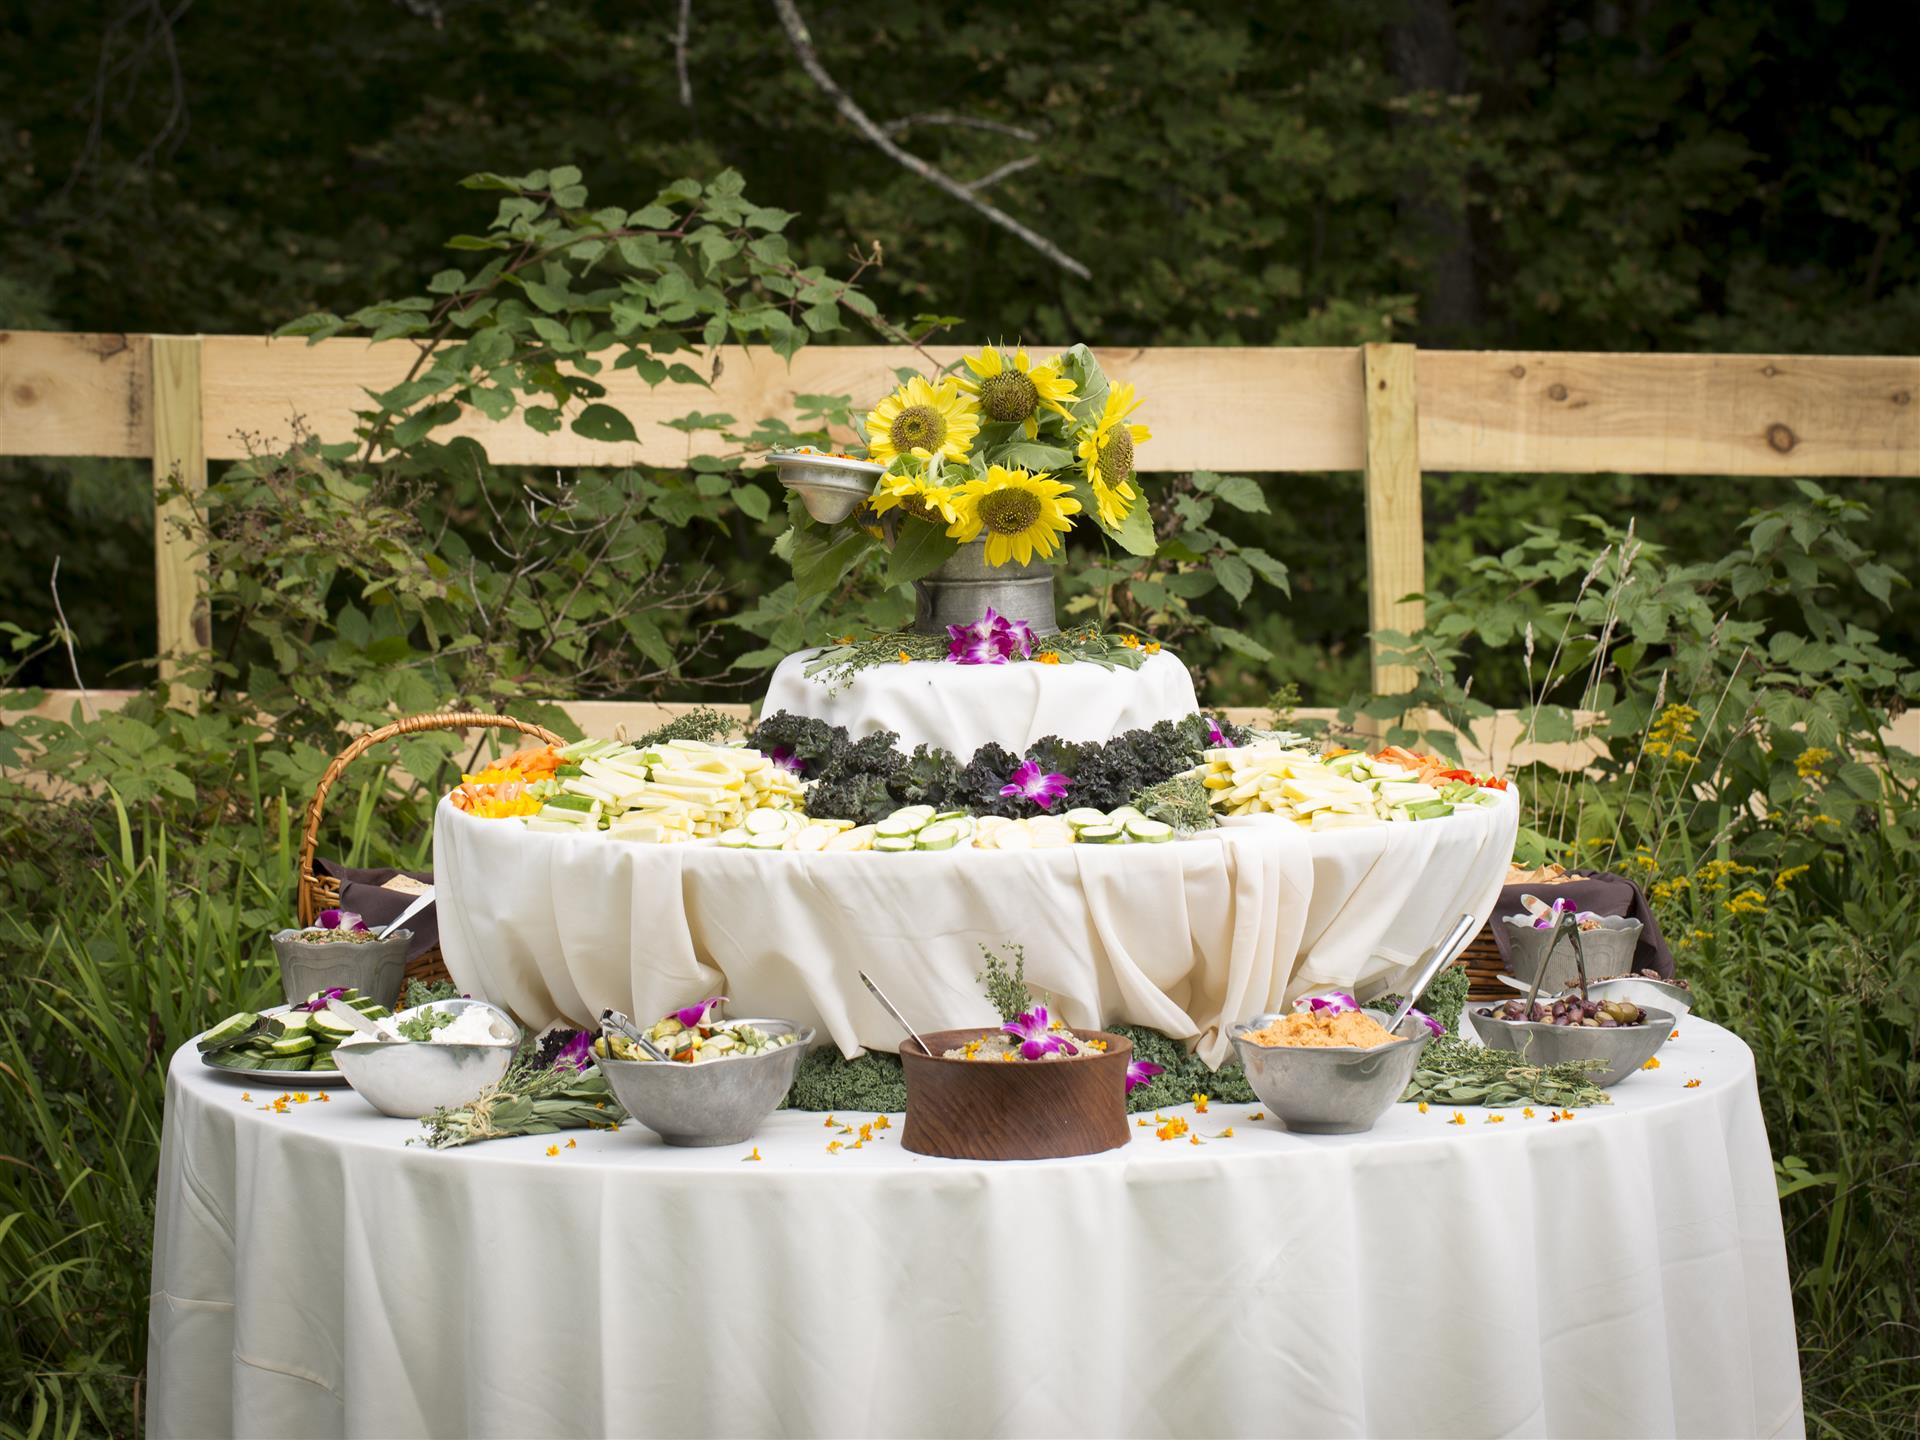 table with many different vegetables and dips with a flower bouqet of sunflowers